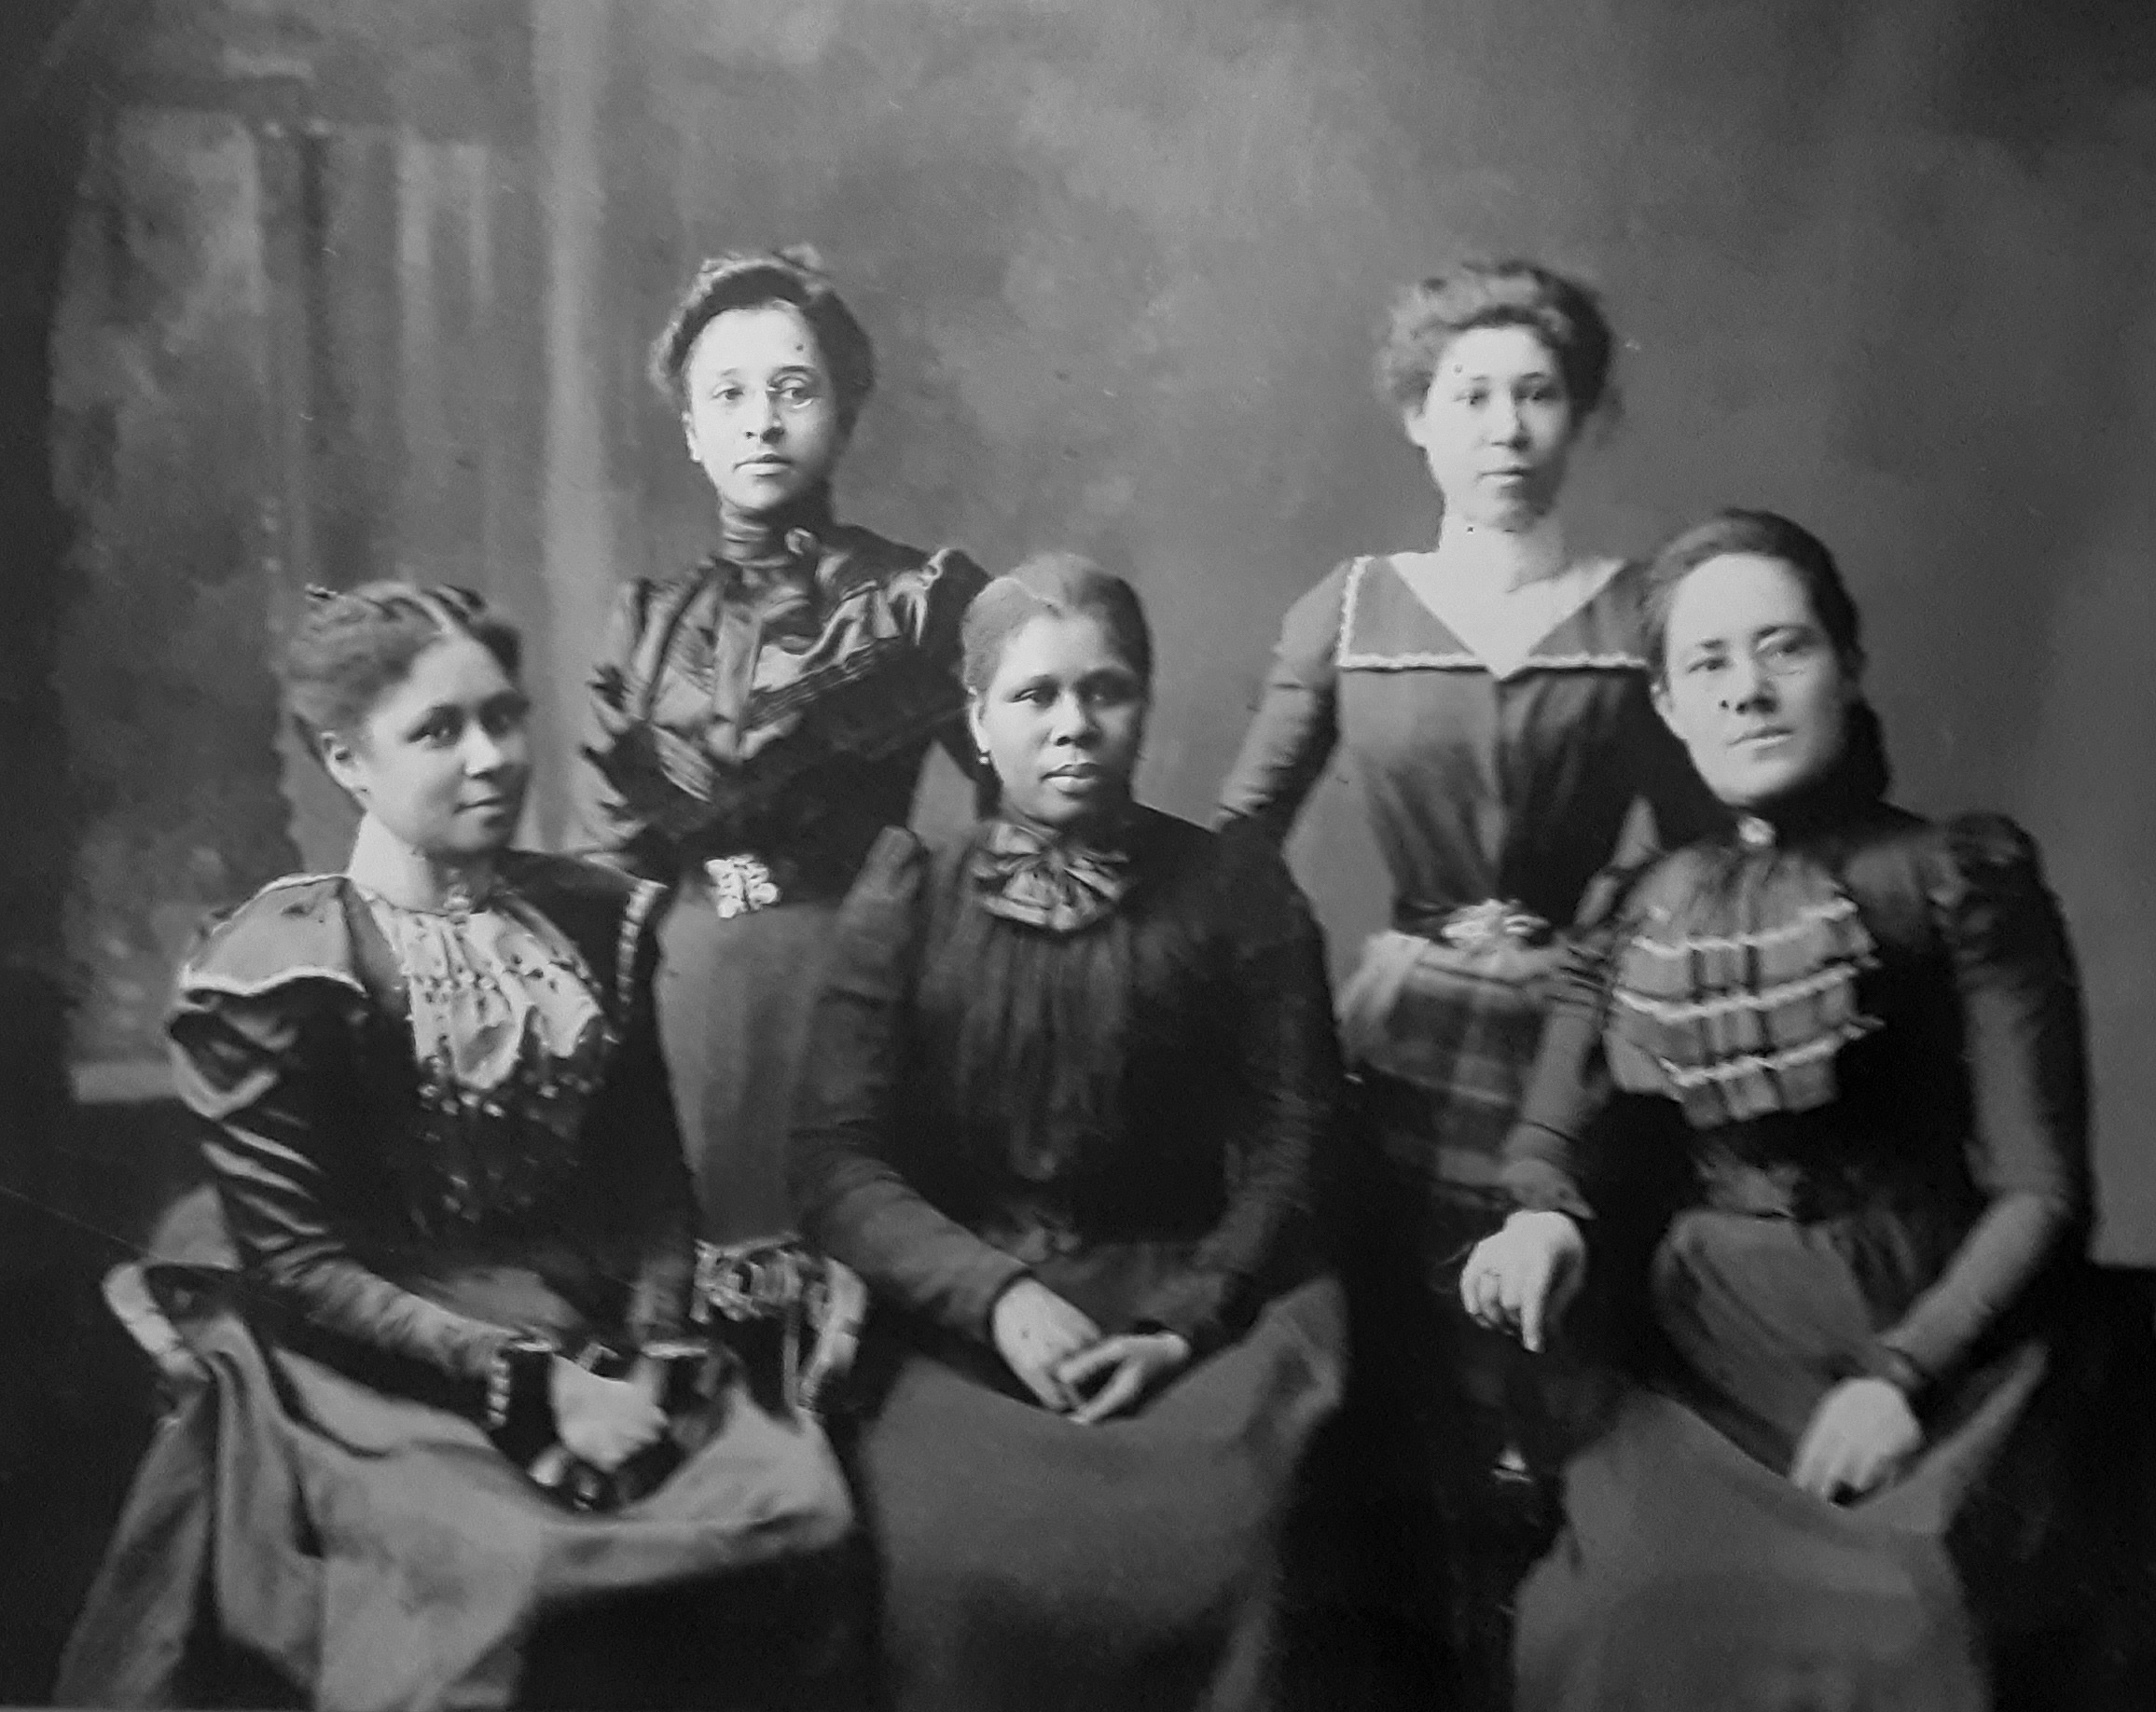 Five black women sitting in nineteenth-century clothing